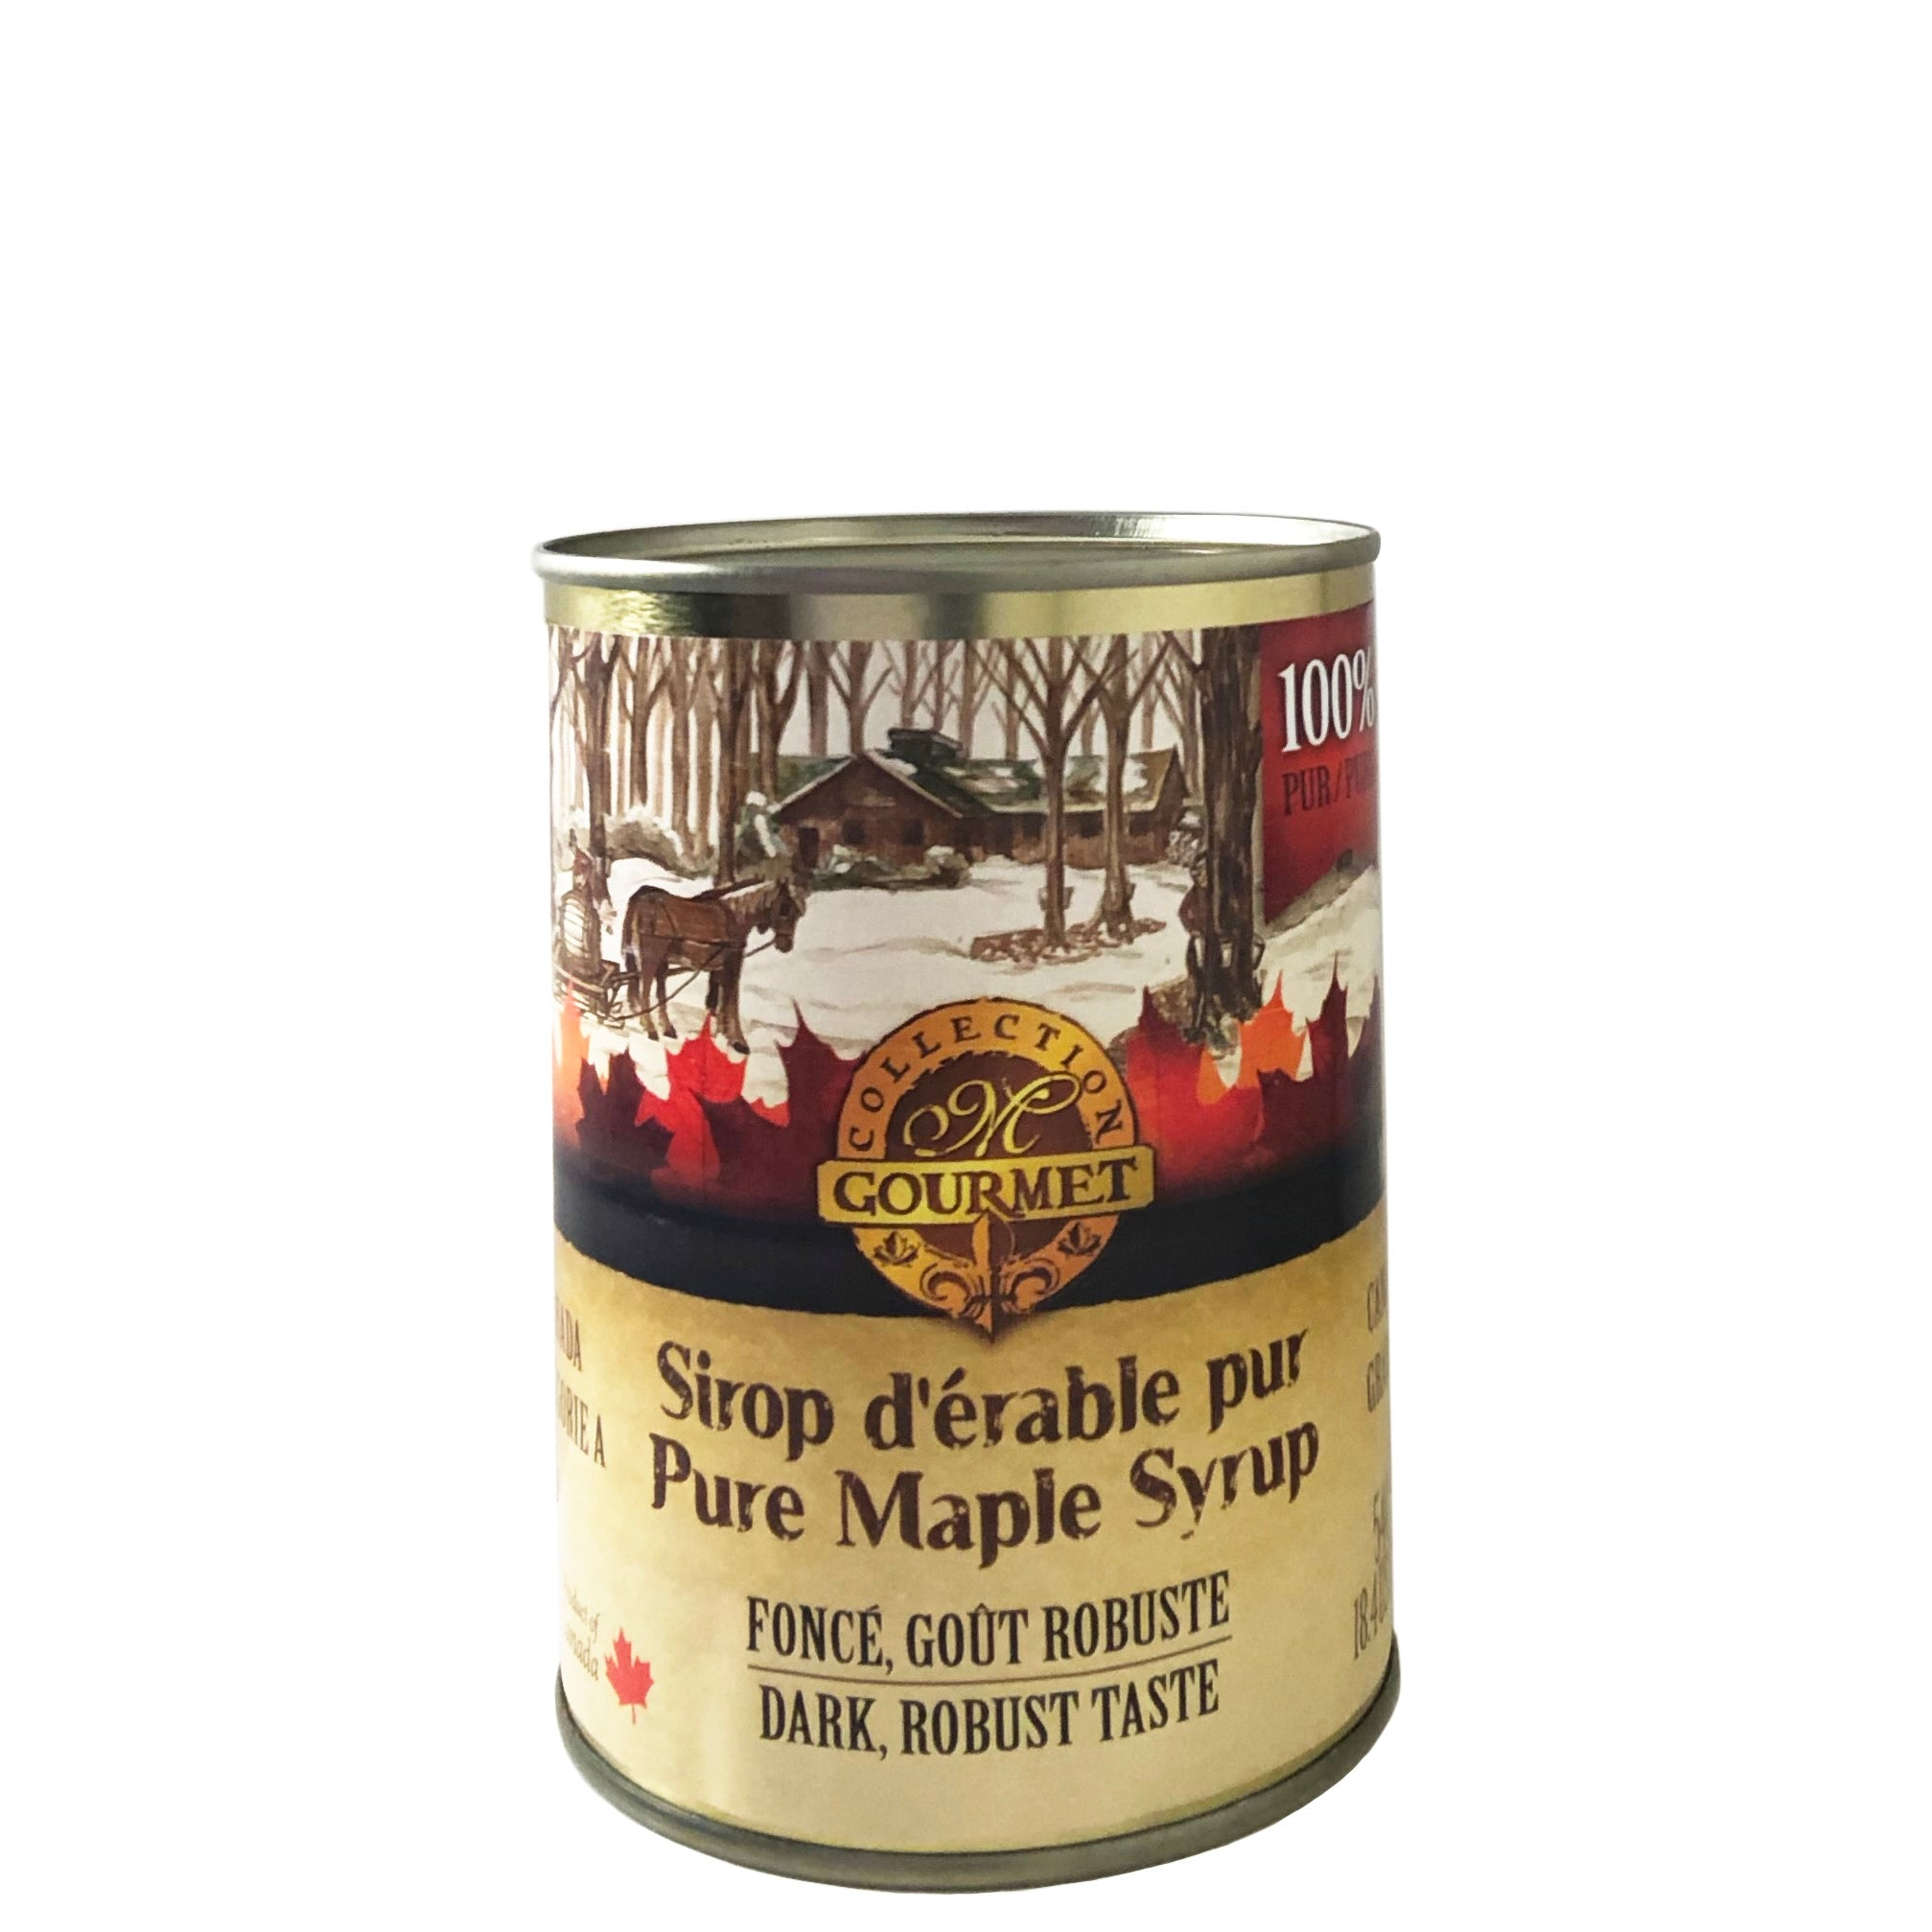 Pure maple Syrup - purer Ahornsirup aus Kanada, Grade A, Dark, traditionelle Dose - Can 540ml